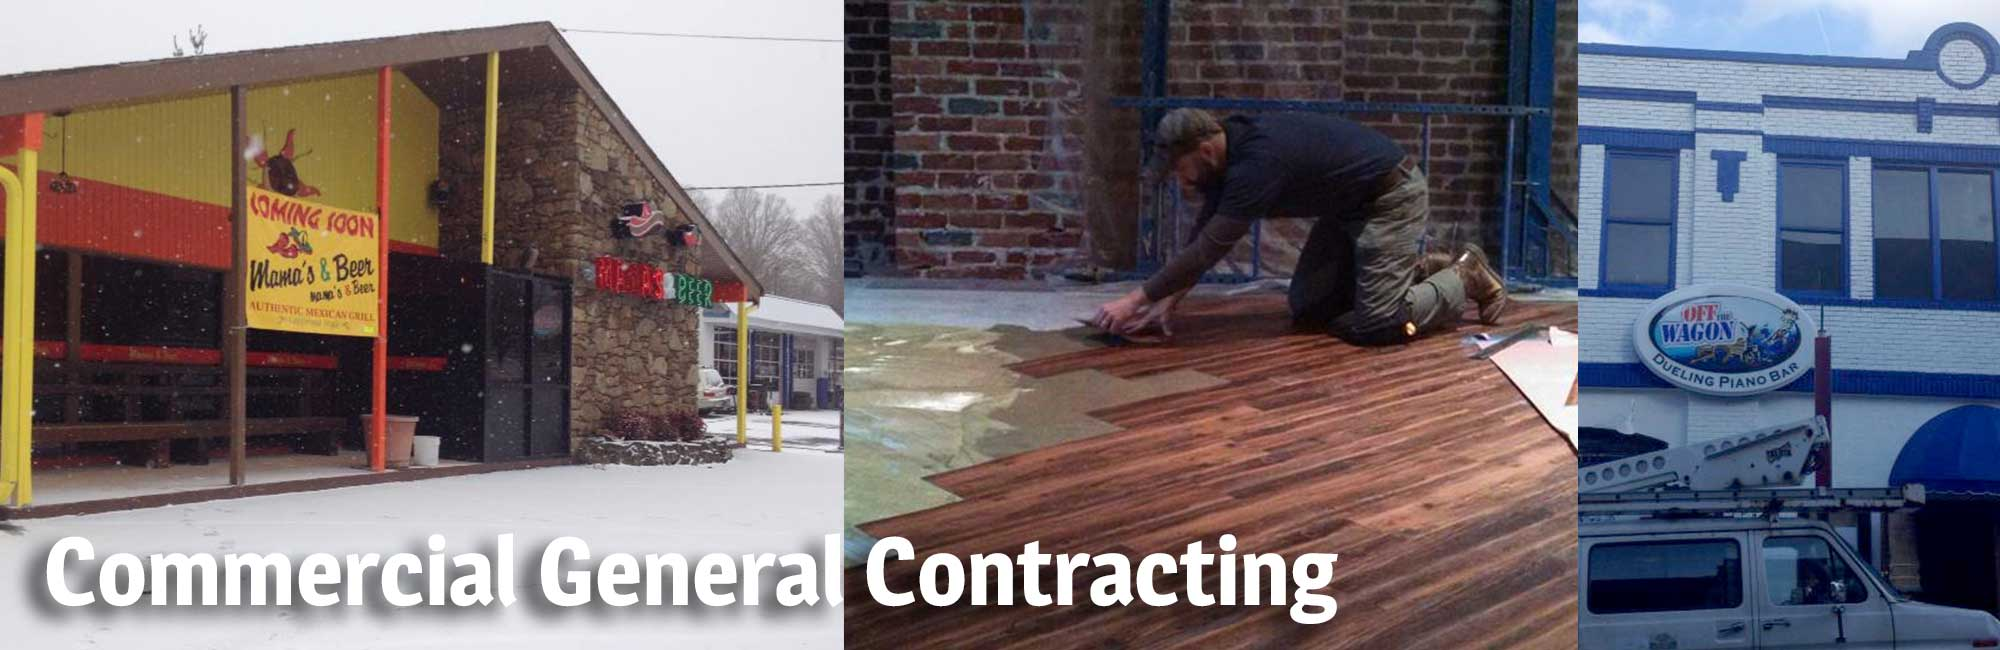 asheville general contracting